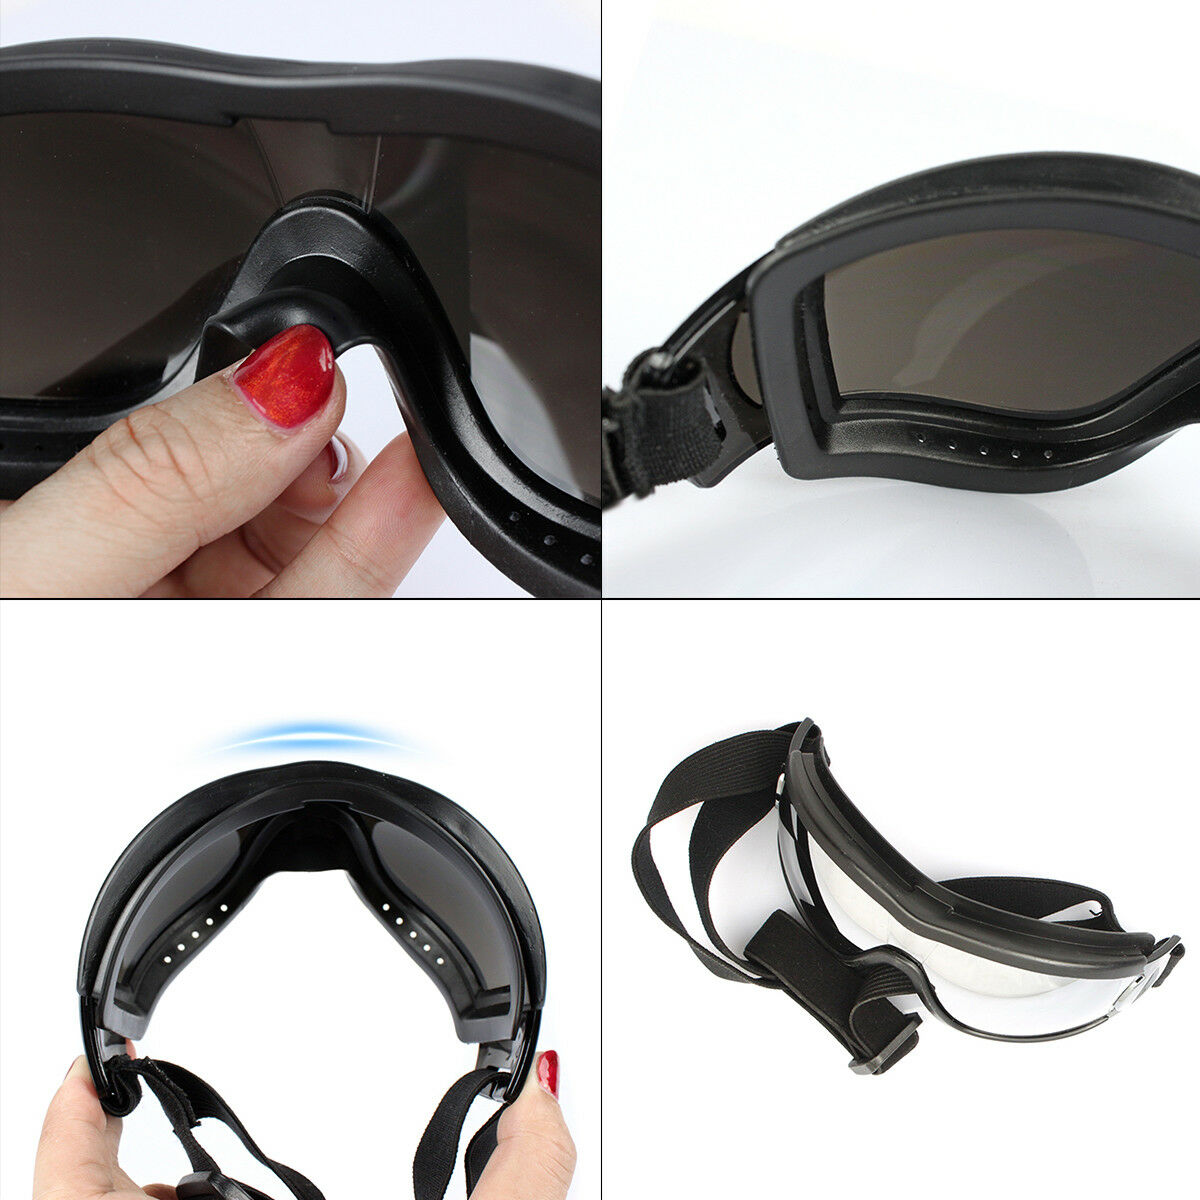 2020 HOT Adjustable Pet Dog Goggles Sunglasses Anti-UV Sun Glasses Eye Wear Protection Waterproof Sunglasses Pet Dog Supplies 13